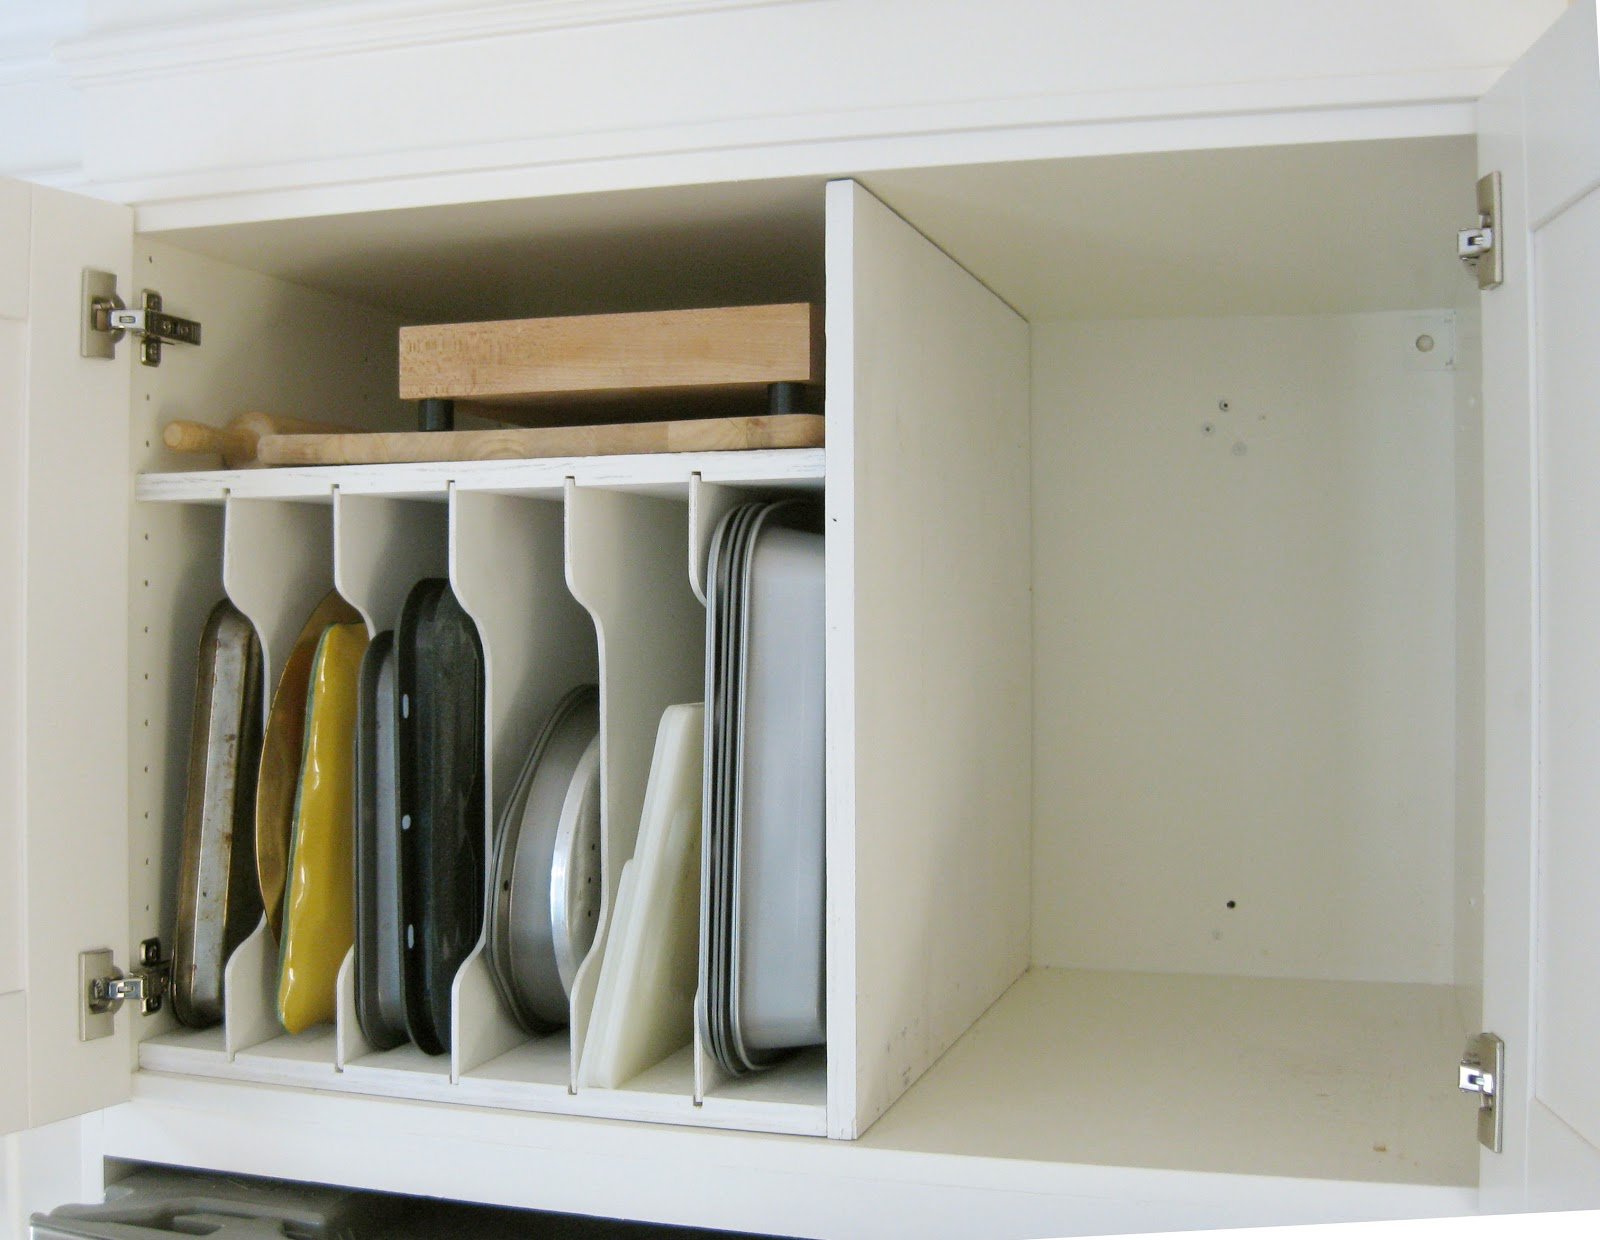 organizing trays in cabinet above refrigerator